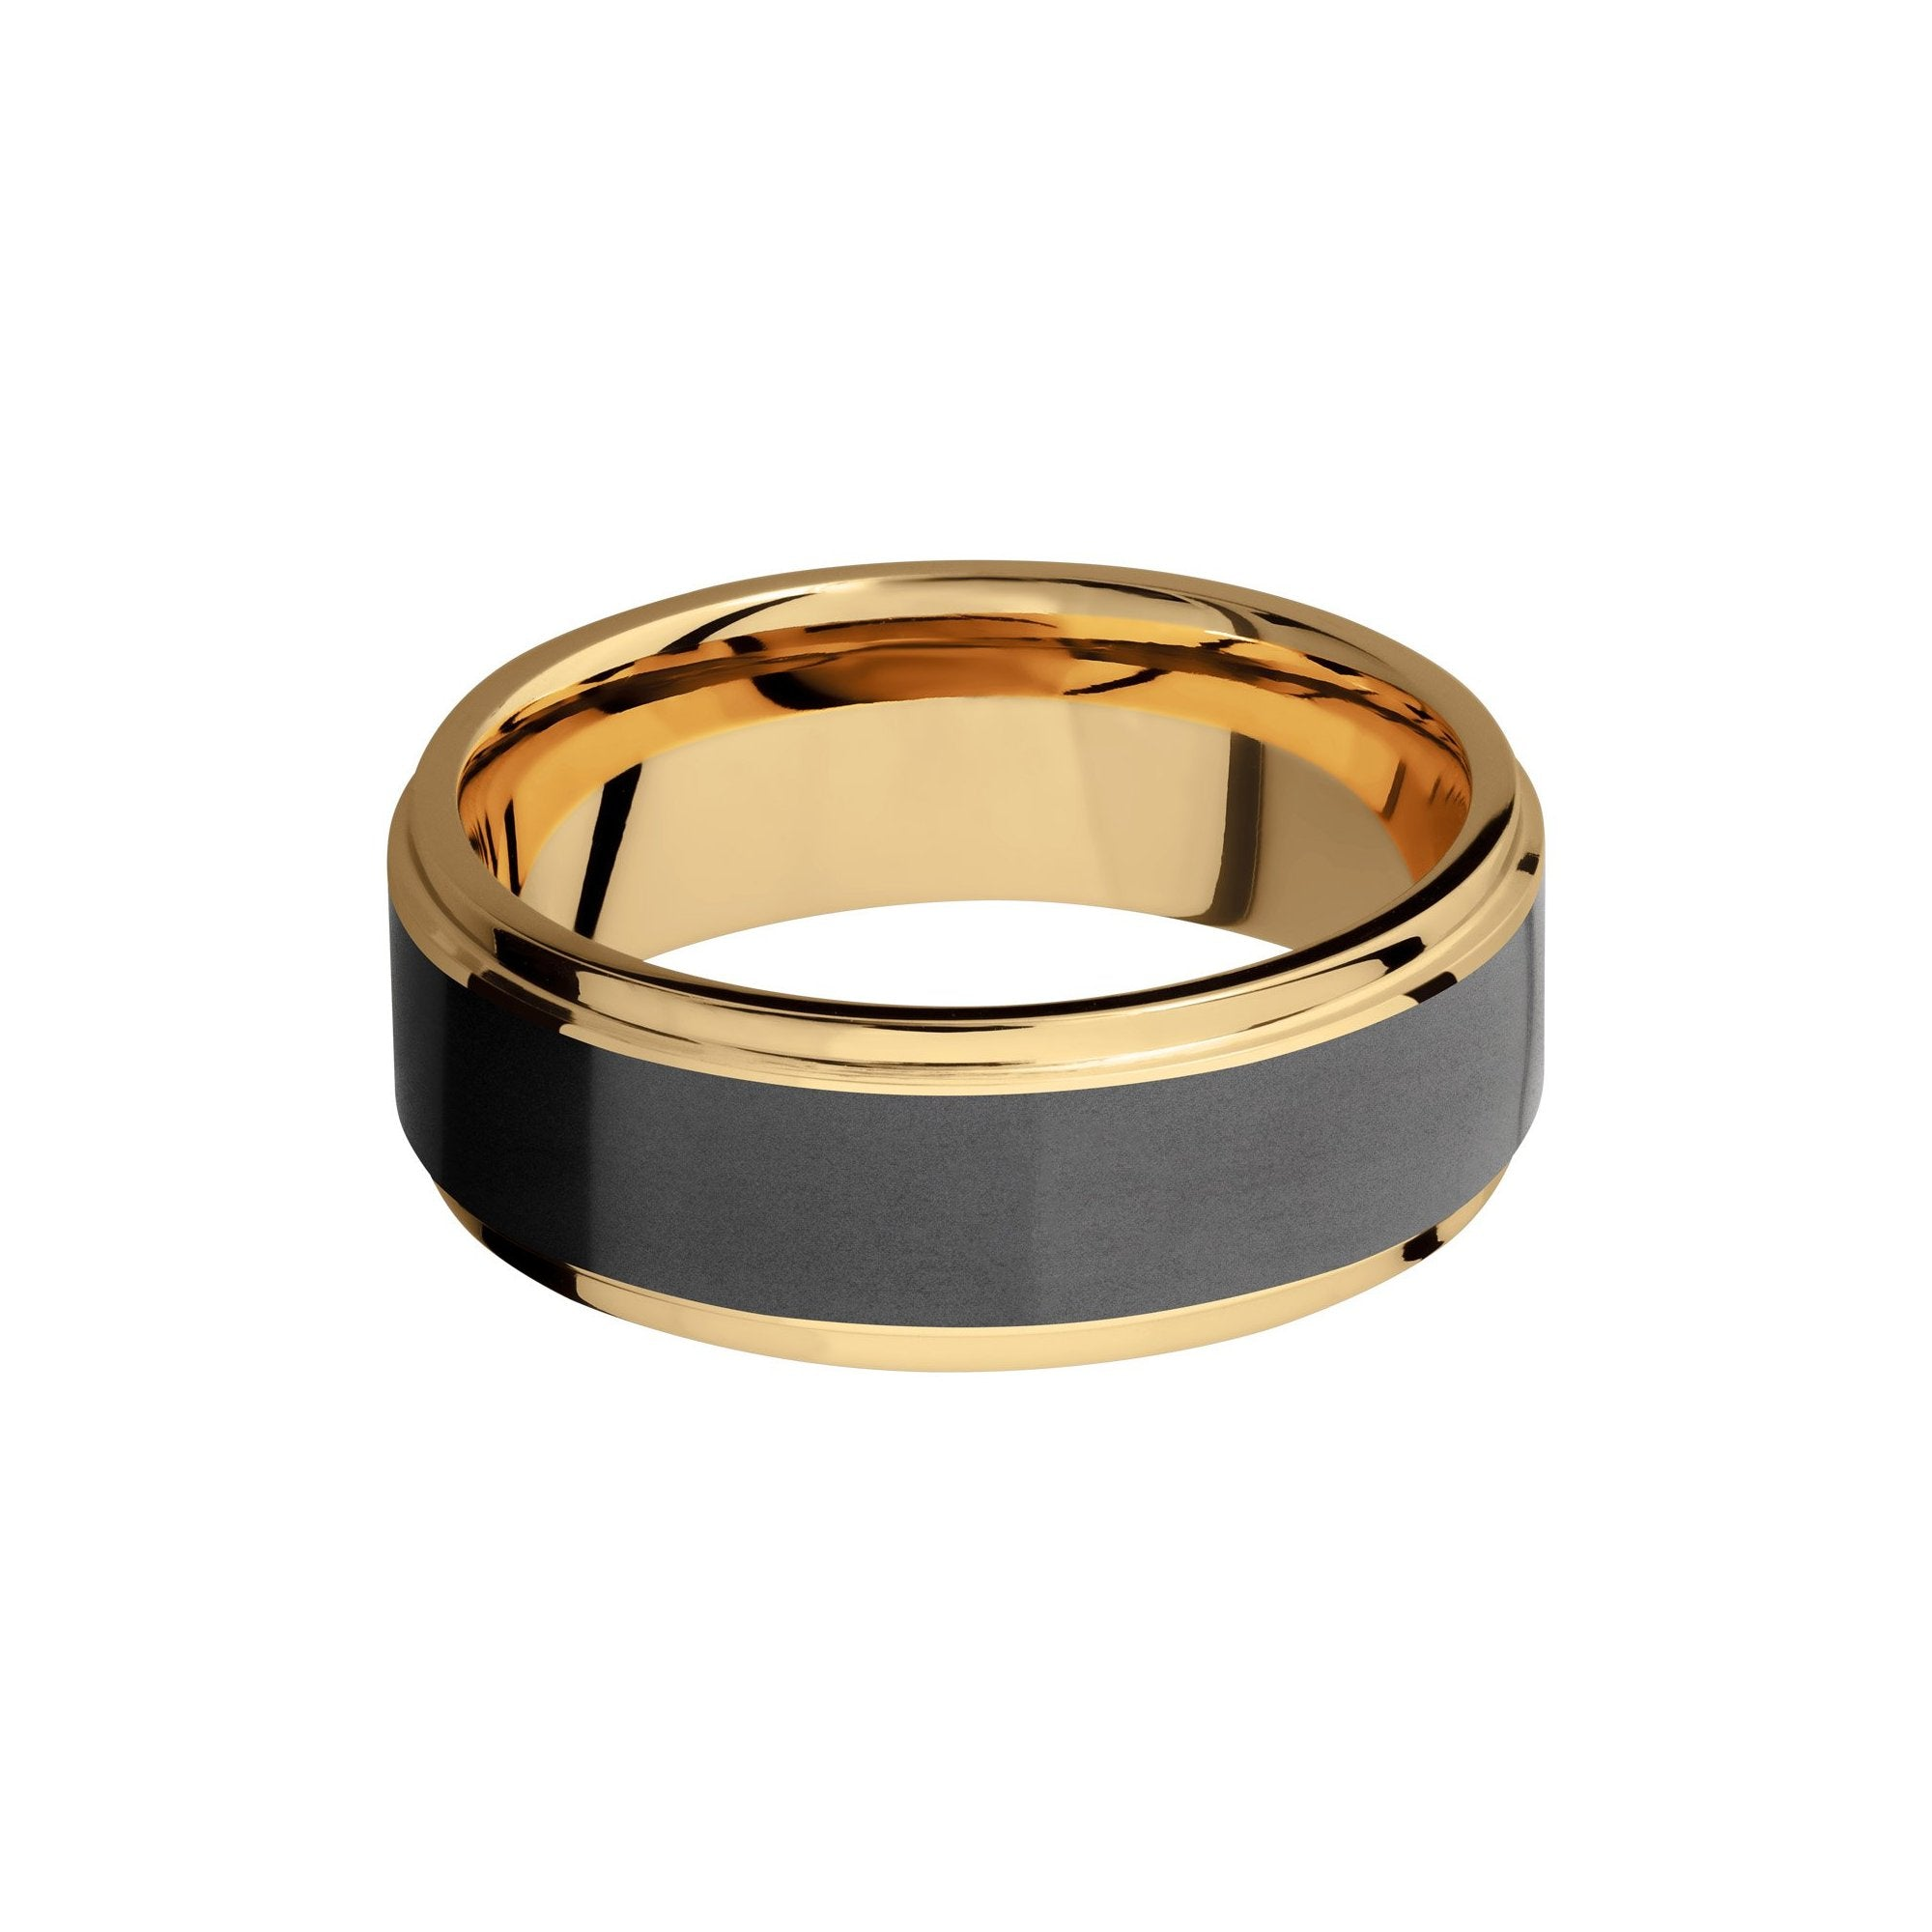 Ares 18k Yellow Gold Band with Elysium Black Diamond Inlay - Talisman Collection Fine Jewelers